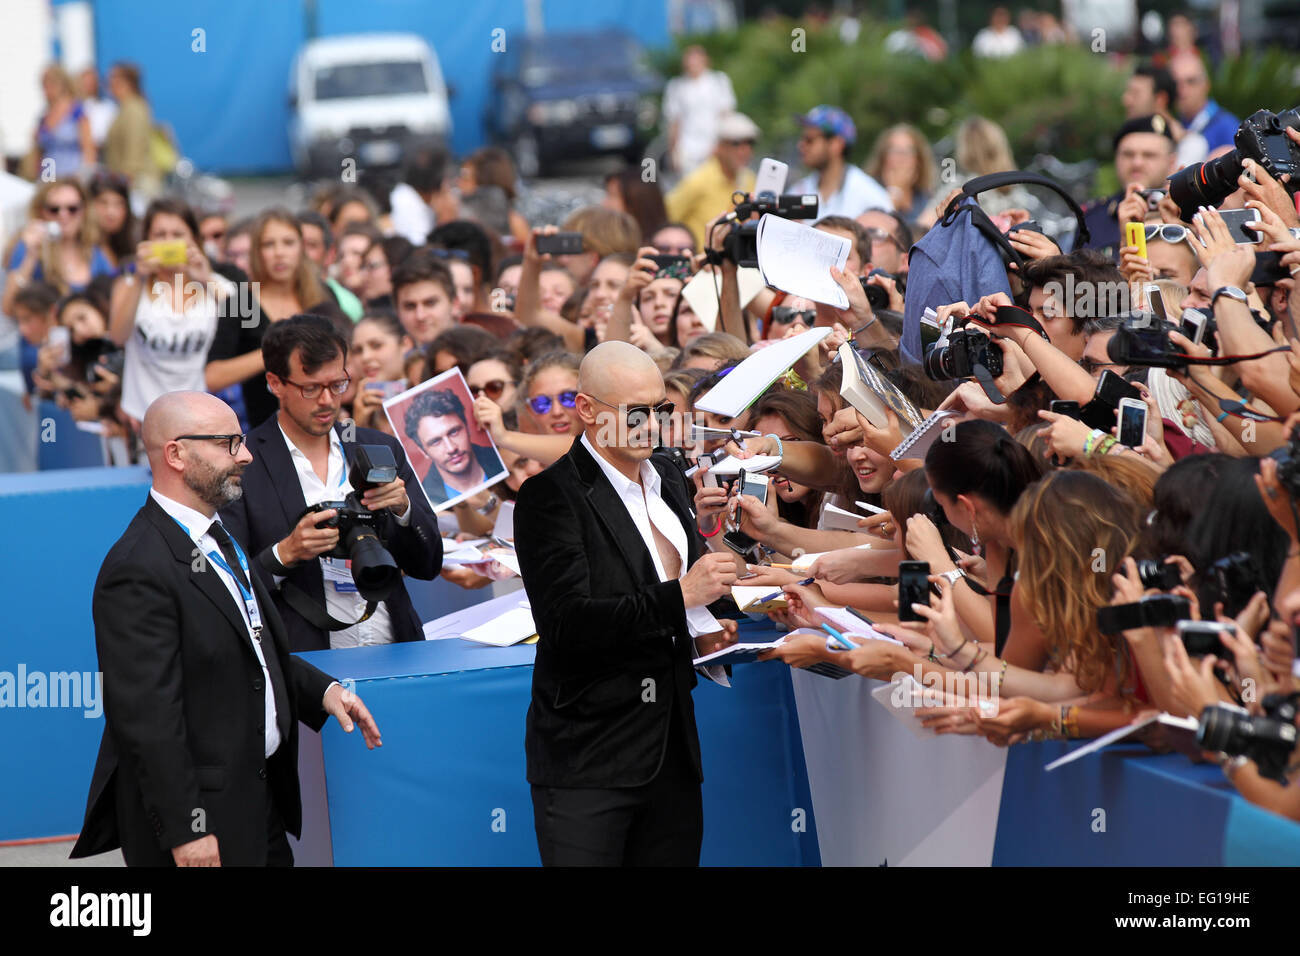 ITALY, Venice : US actor and director James Franco signs autographs - Stock Image